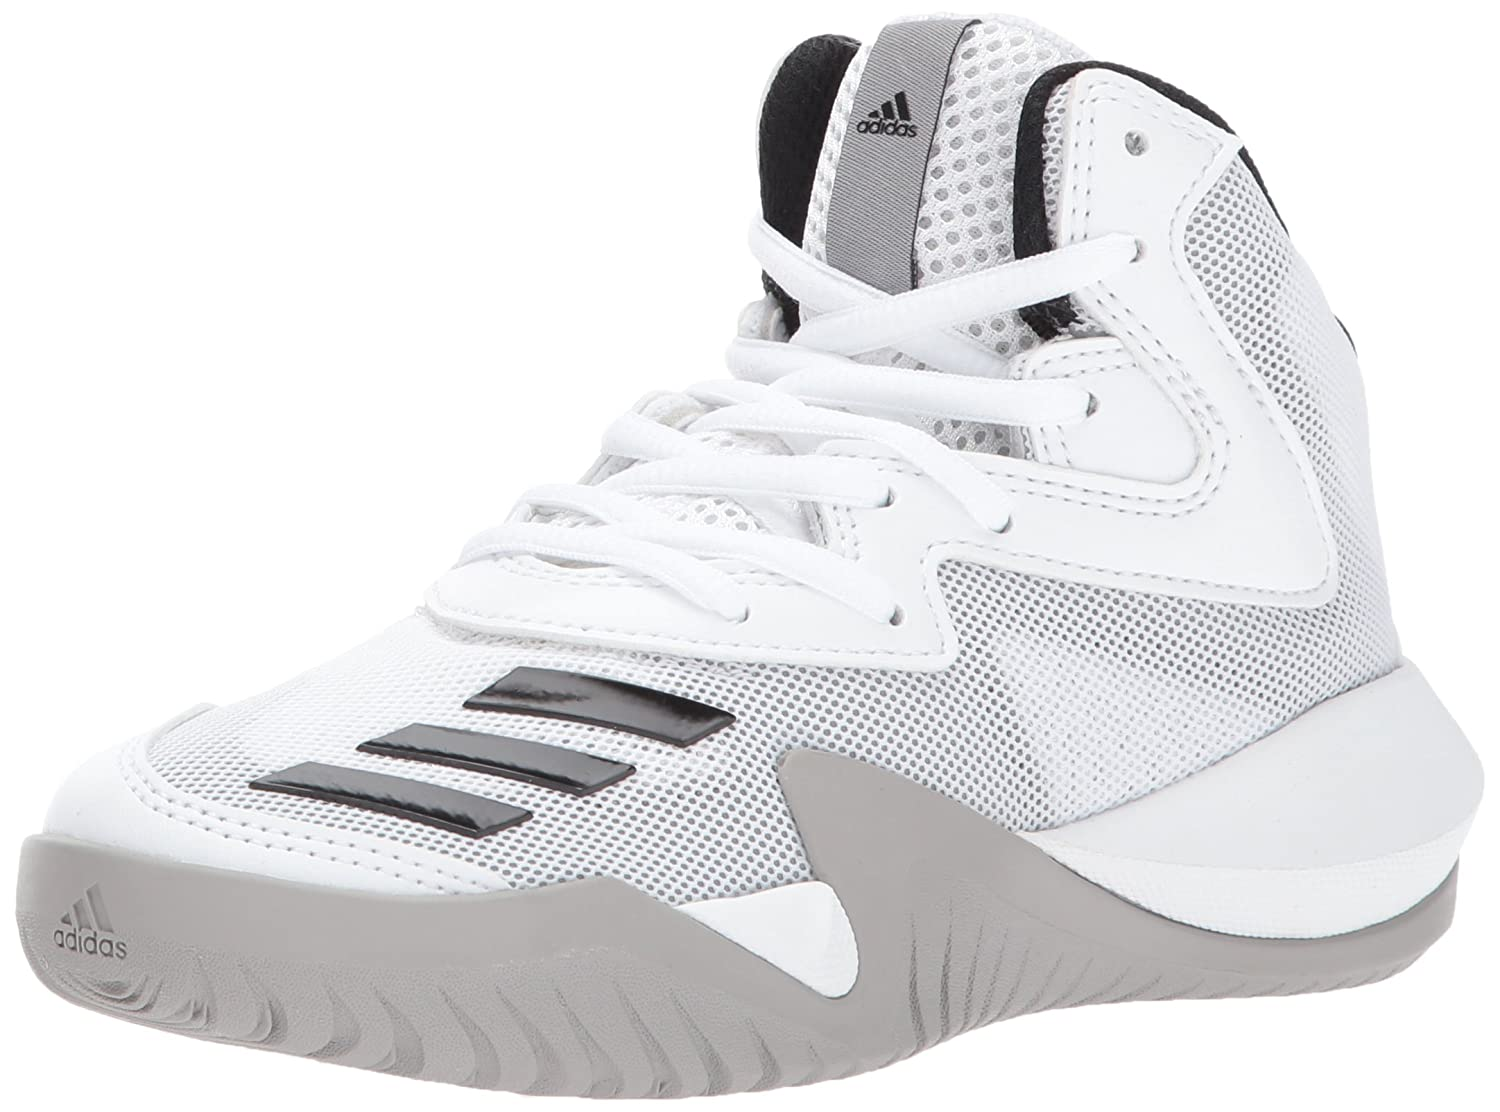 adidas Originals Men's Crazy Team K Basketball Shoes B01NBO71PI (4 M US)|White/Black/Medium Solid Grey